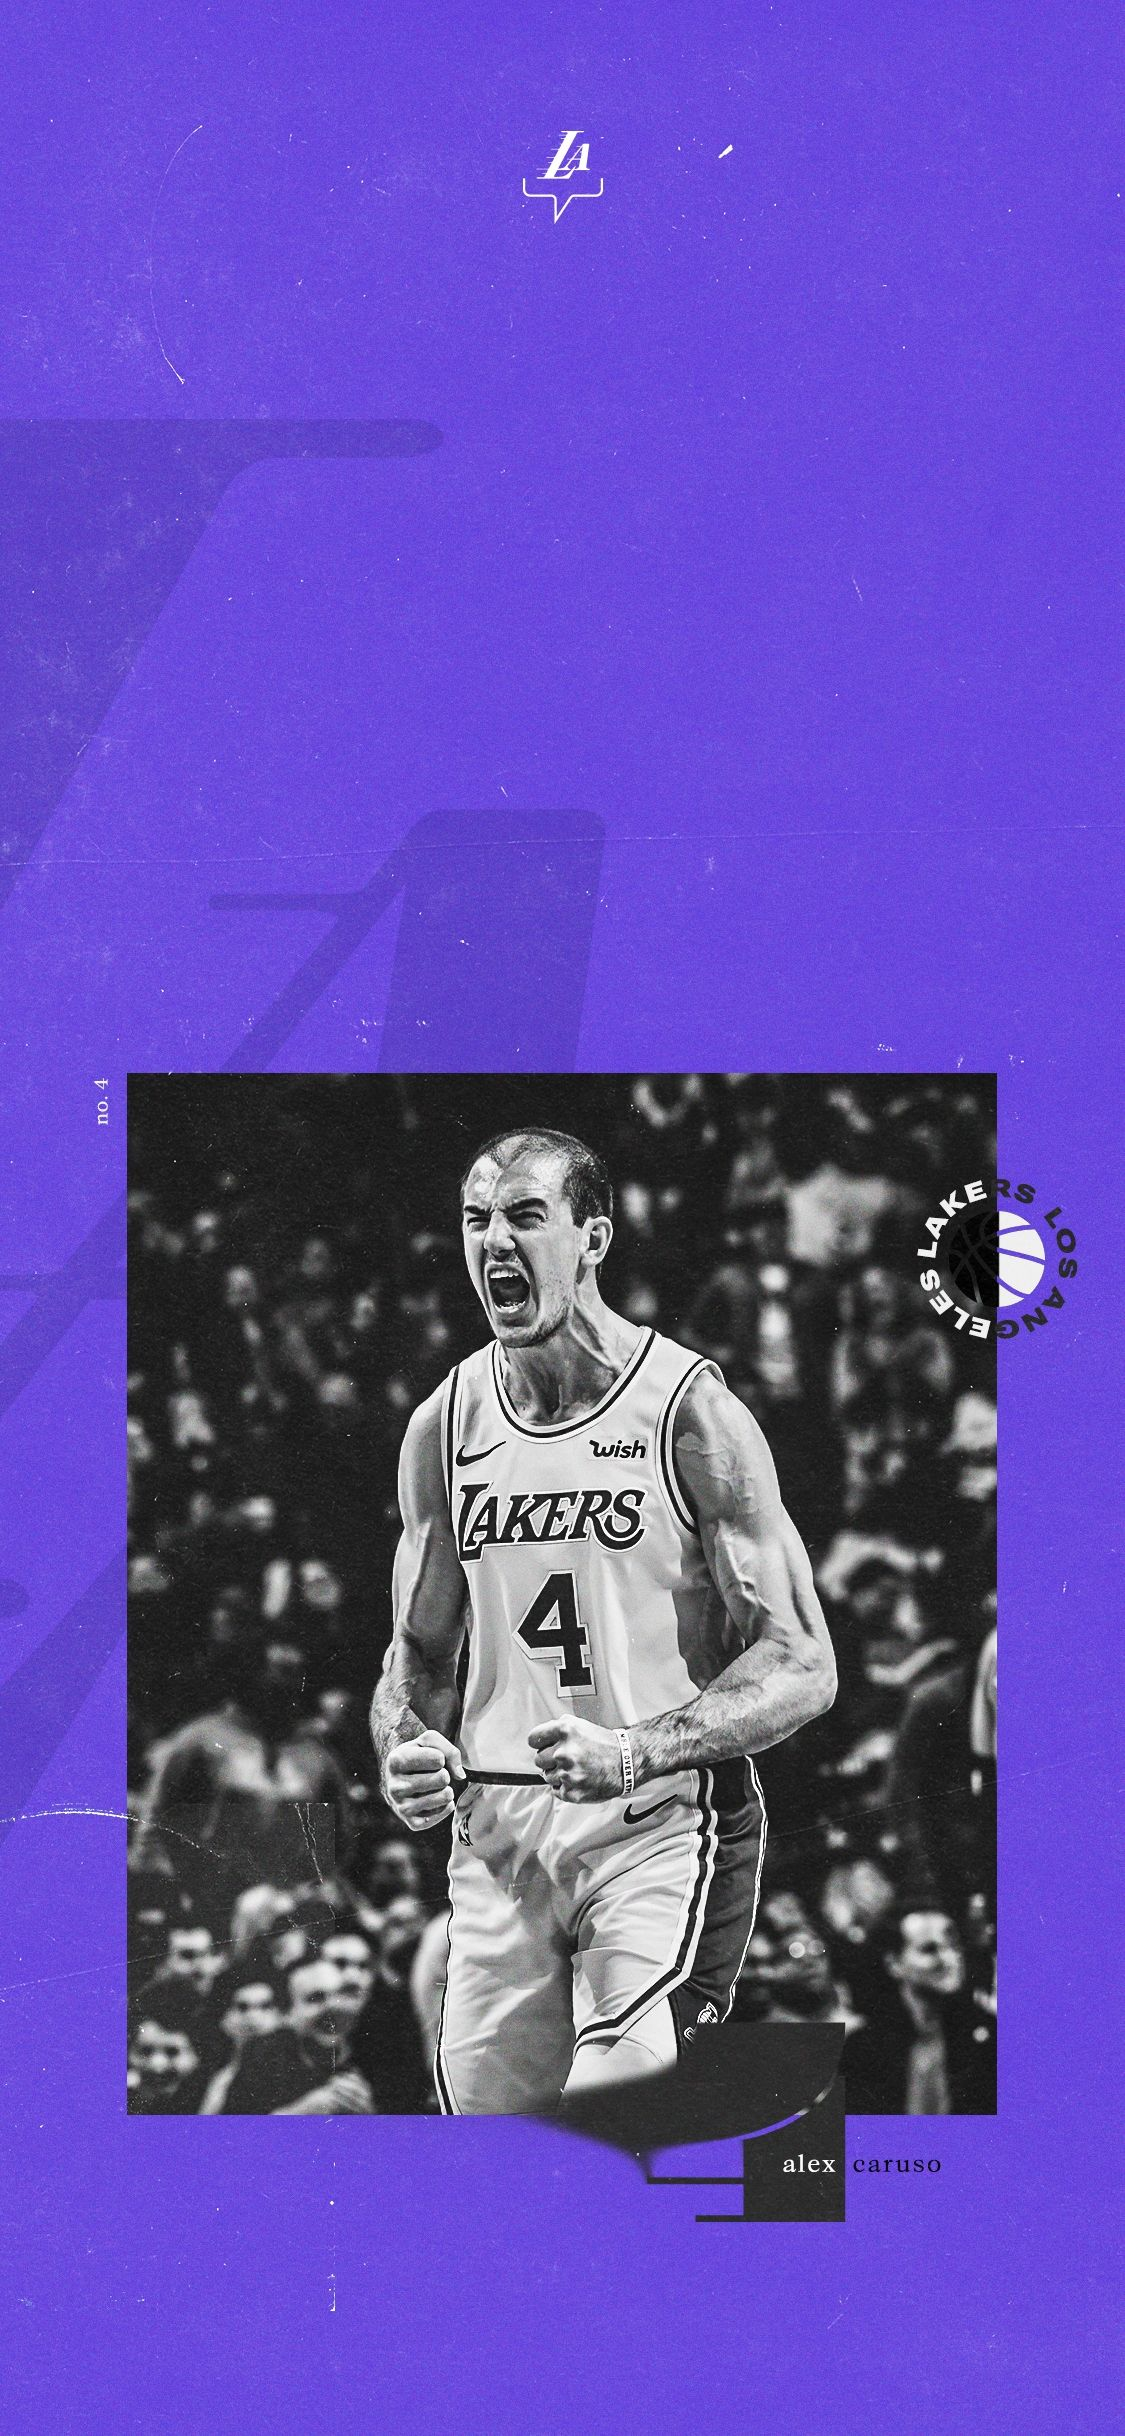 Lakers Wallpapers And Infographics In 2020 Lakers Wallpaper Nba Wallpapers Lakers